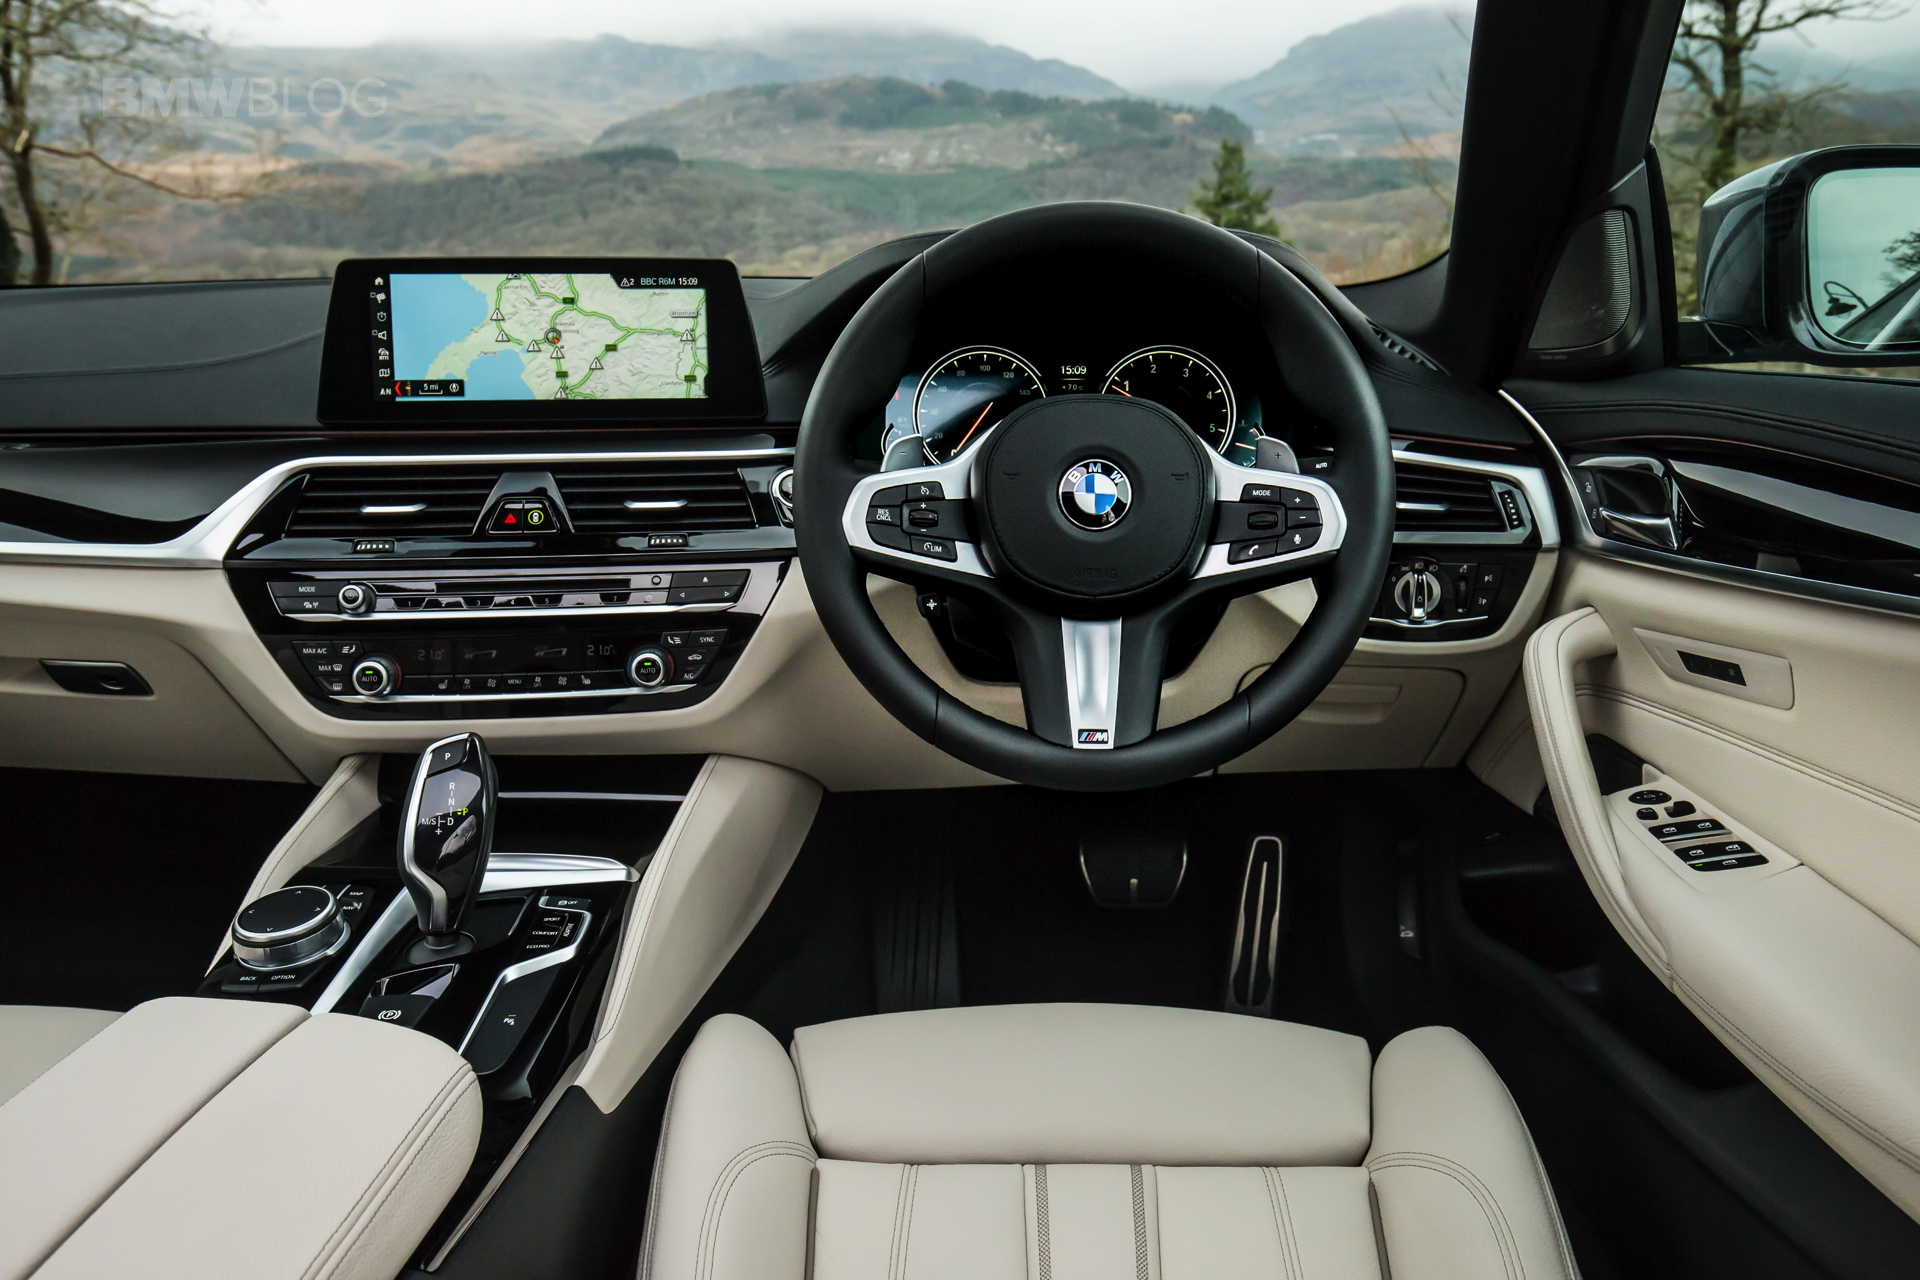 The Bmw Sports Automatic Transmission Features As Standard On All Other Models With Even More Dynamic Shift Characteristics